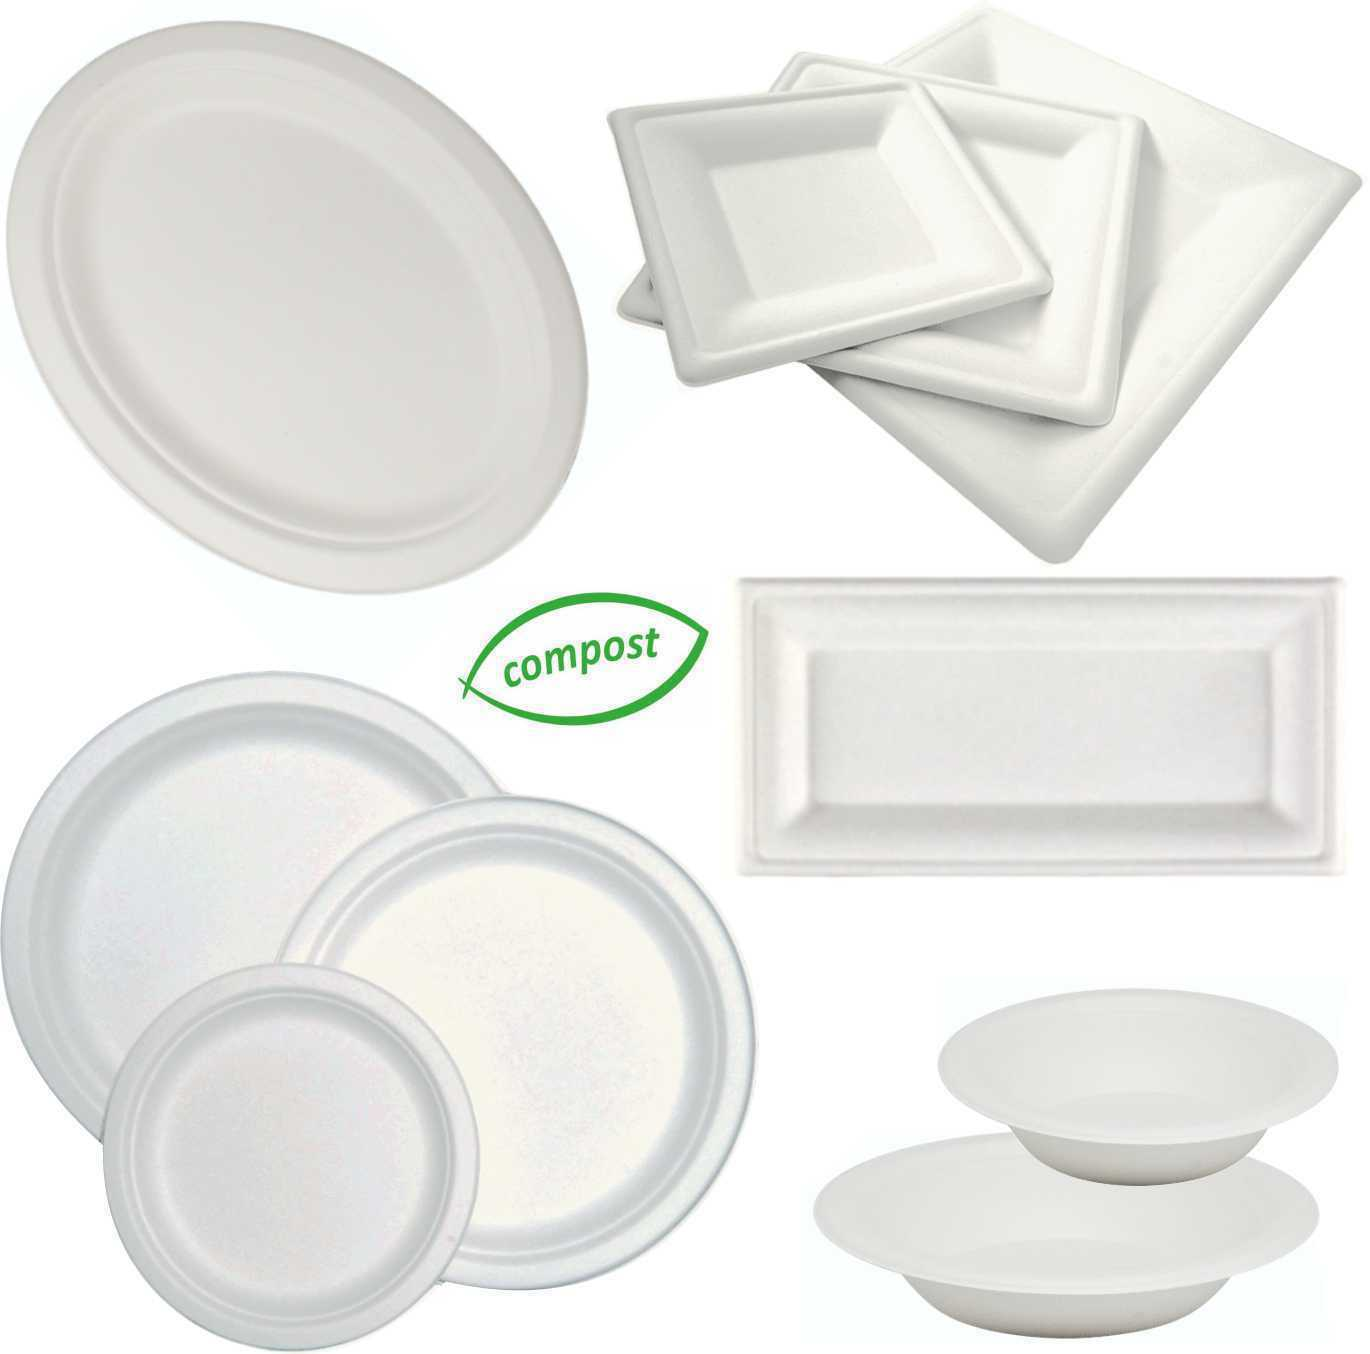 Biodegradable Bagasse Weiß, Round, Square, Oval, Oblong Plates, Bowls Sugarcane